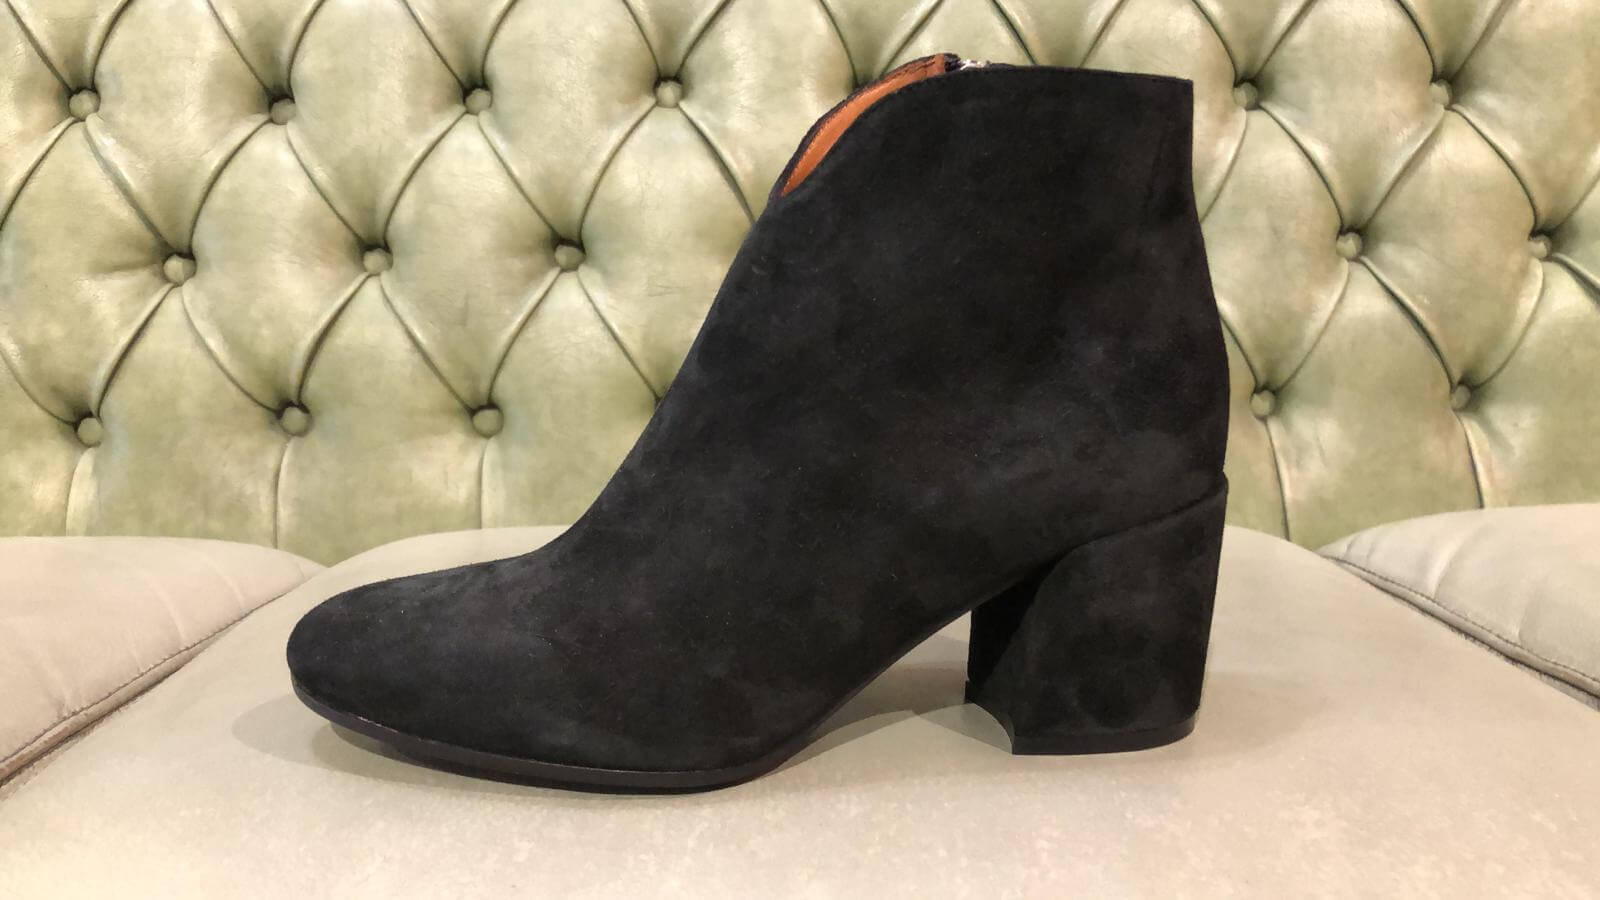 Black suede ankle boots made in Italy, elegant